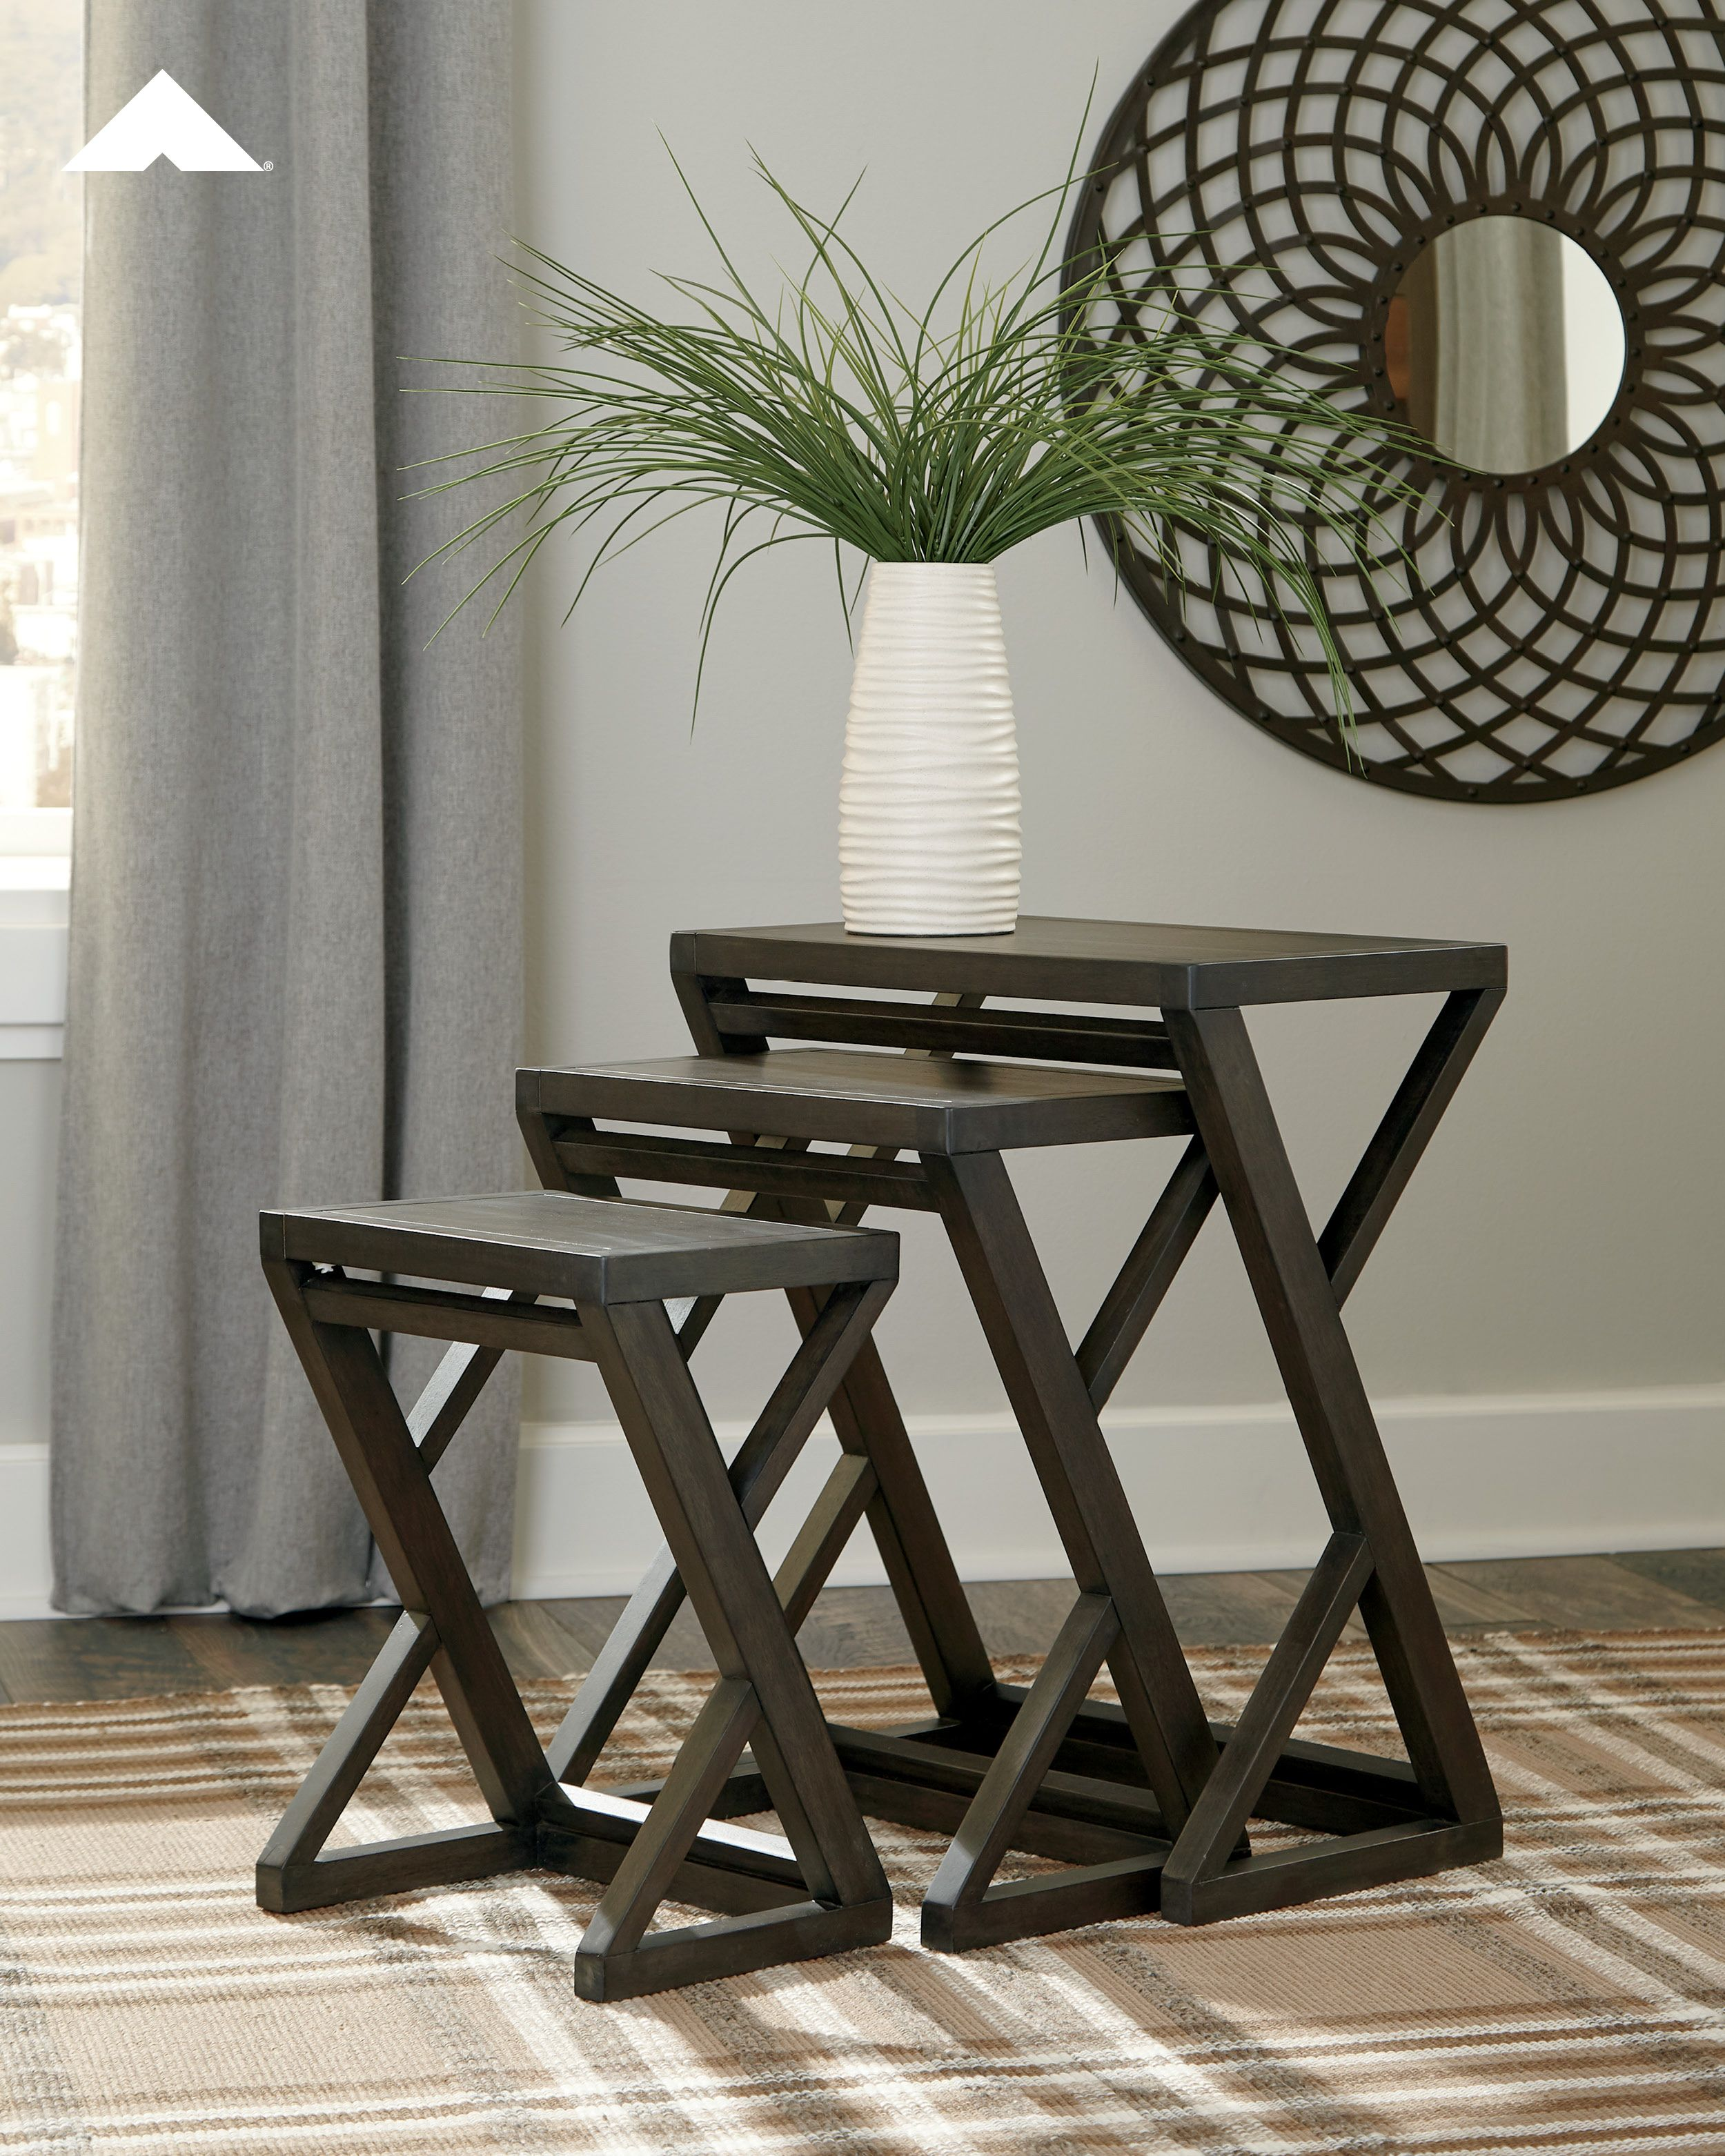 cairnburg gray accent table set ashley furniture tables livingroomdecor homedecorideas ashleyfurniture rustic half moon entryway bench tall mirrored dresser small marble dining